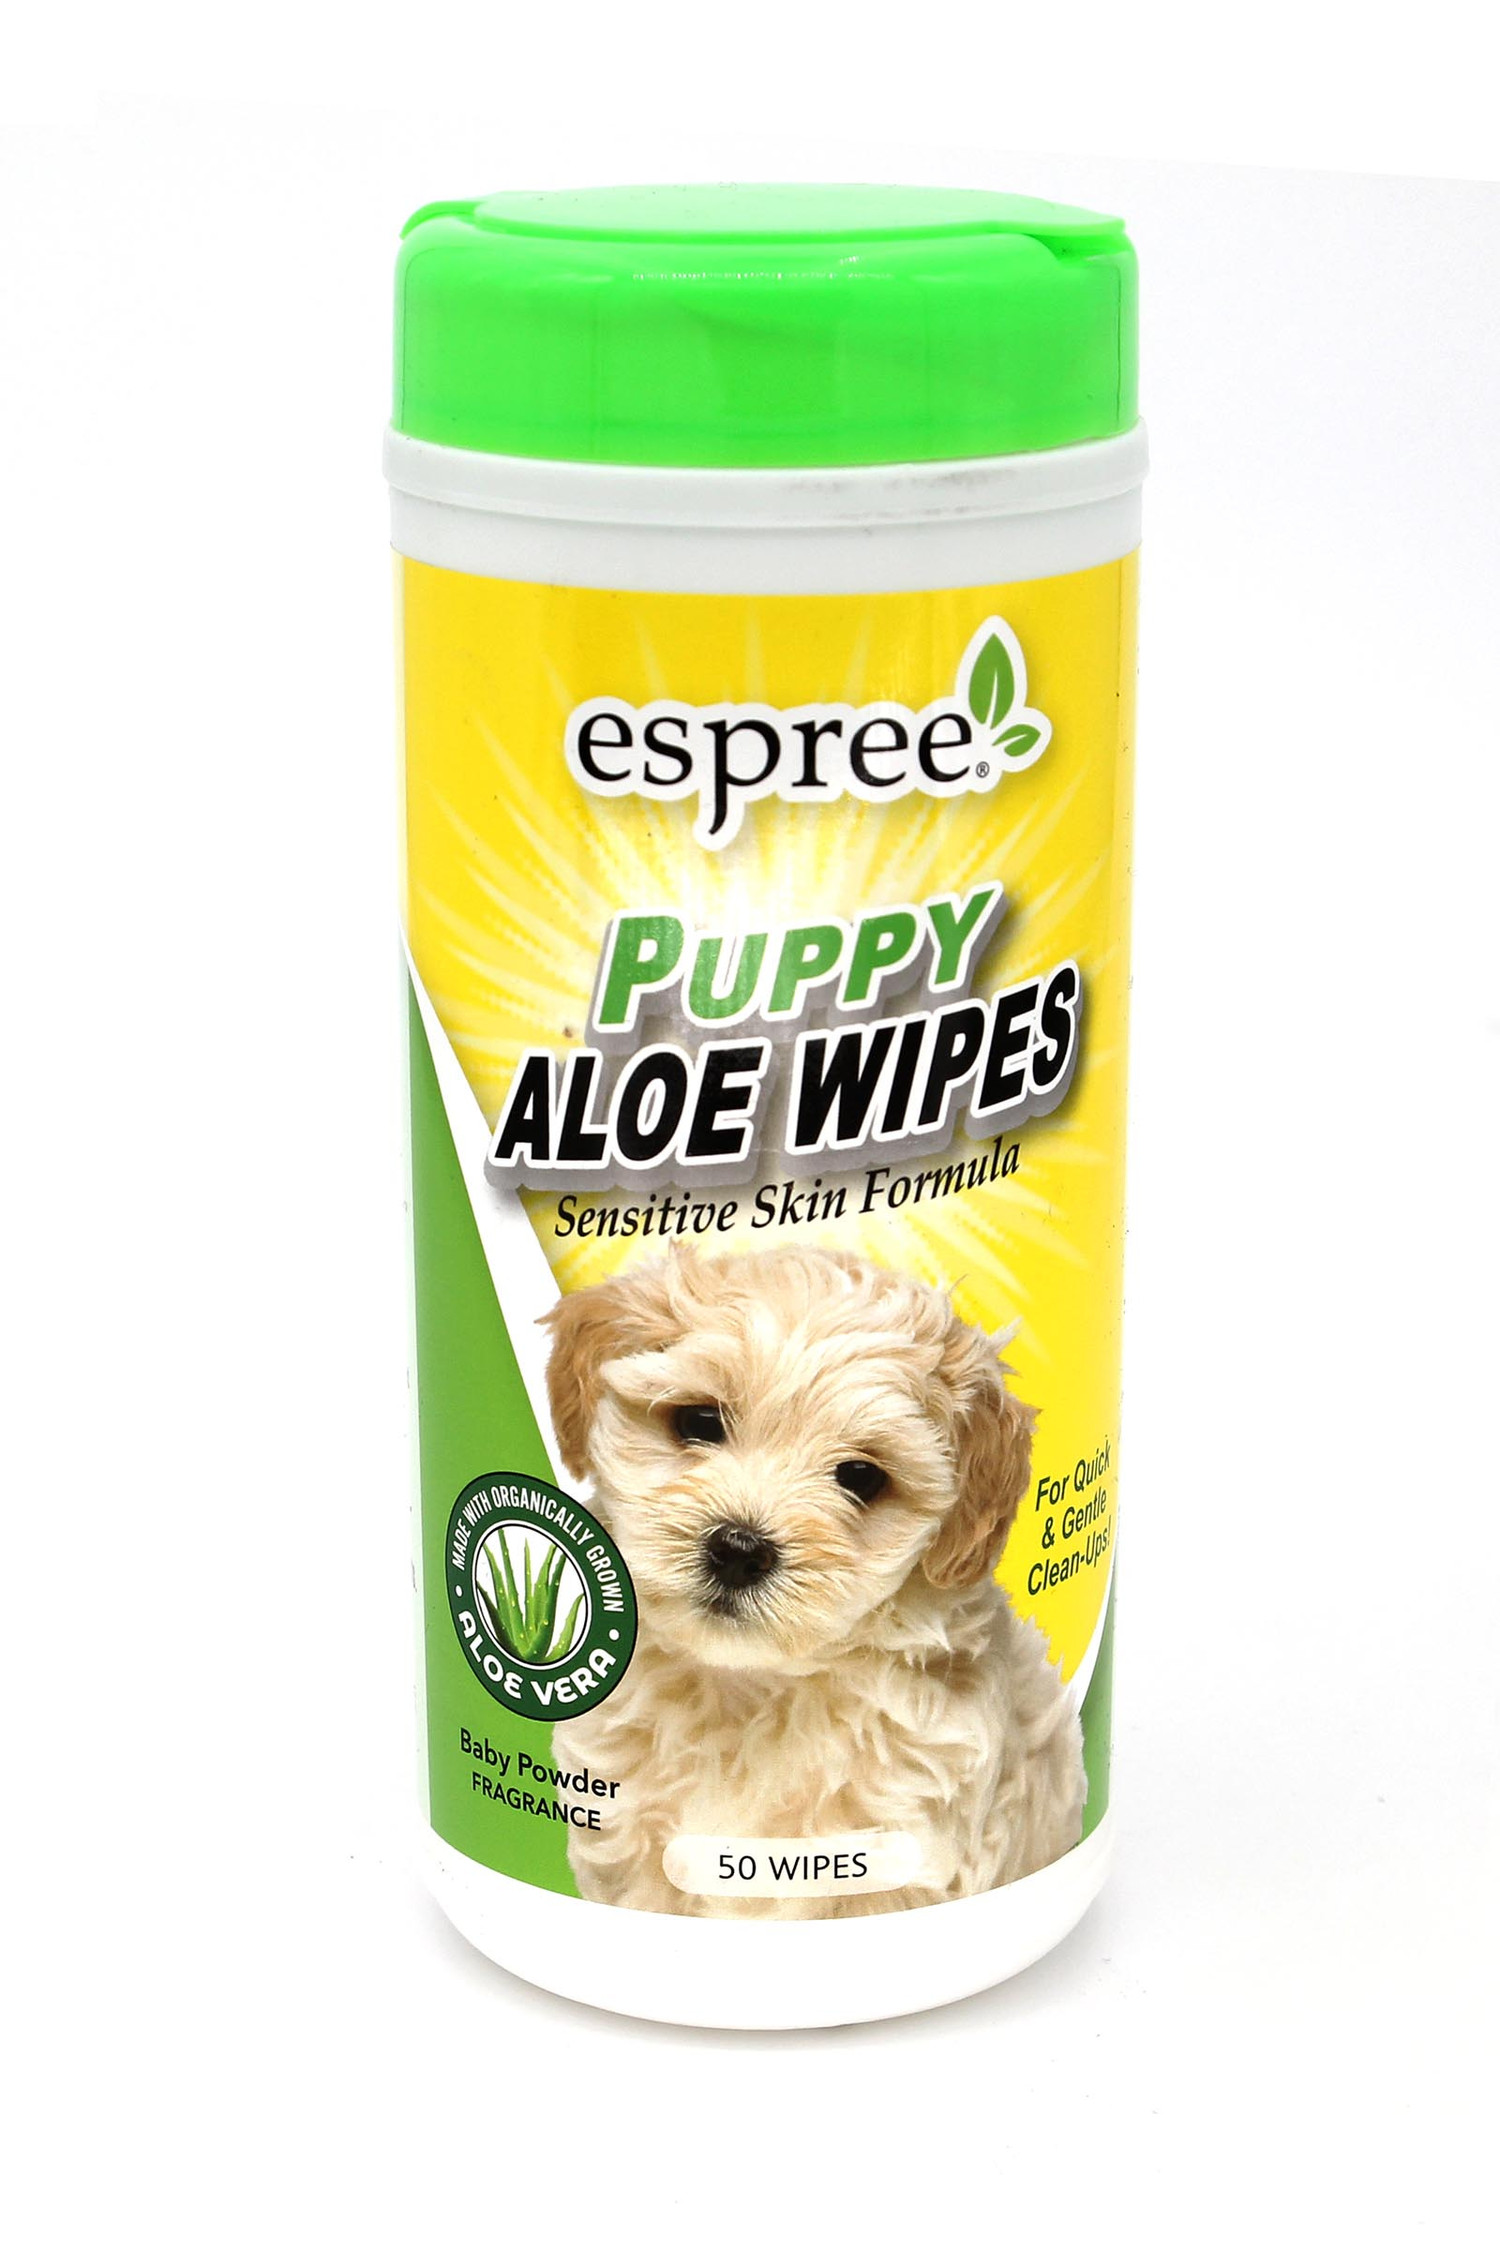 Espree Natural Puppy Dog Cleansing Wipes Made with Organic Aloe Vera - 50 Count - Baby Powder Scented